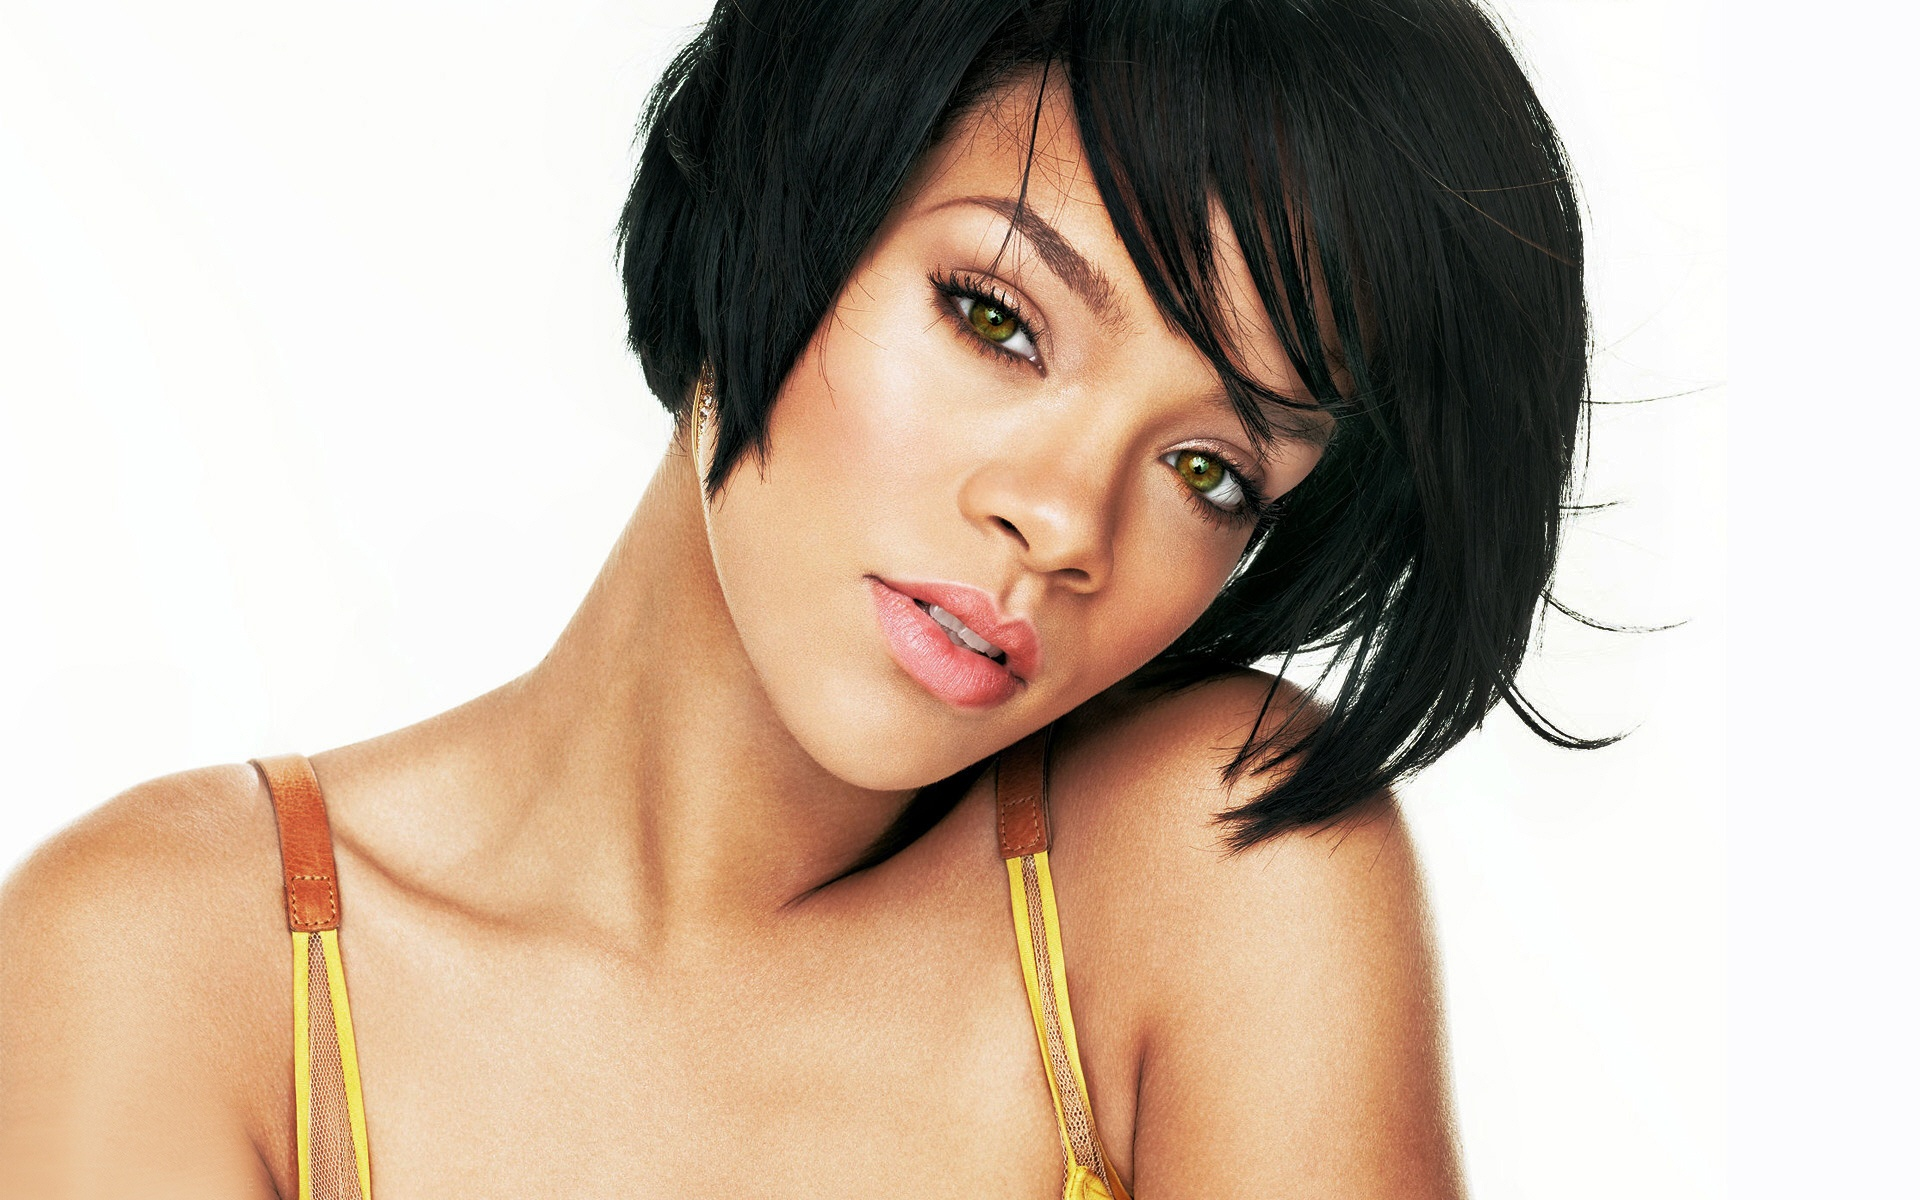 rihanna wallpapers hd A6